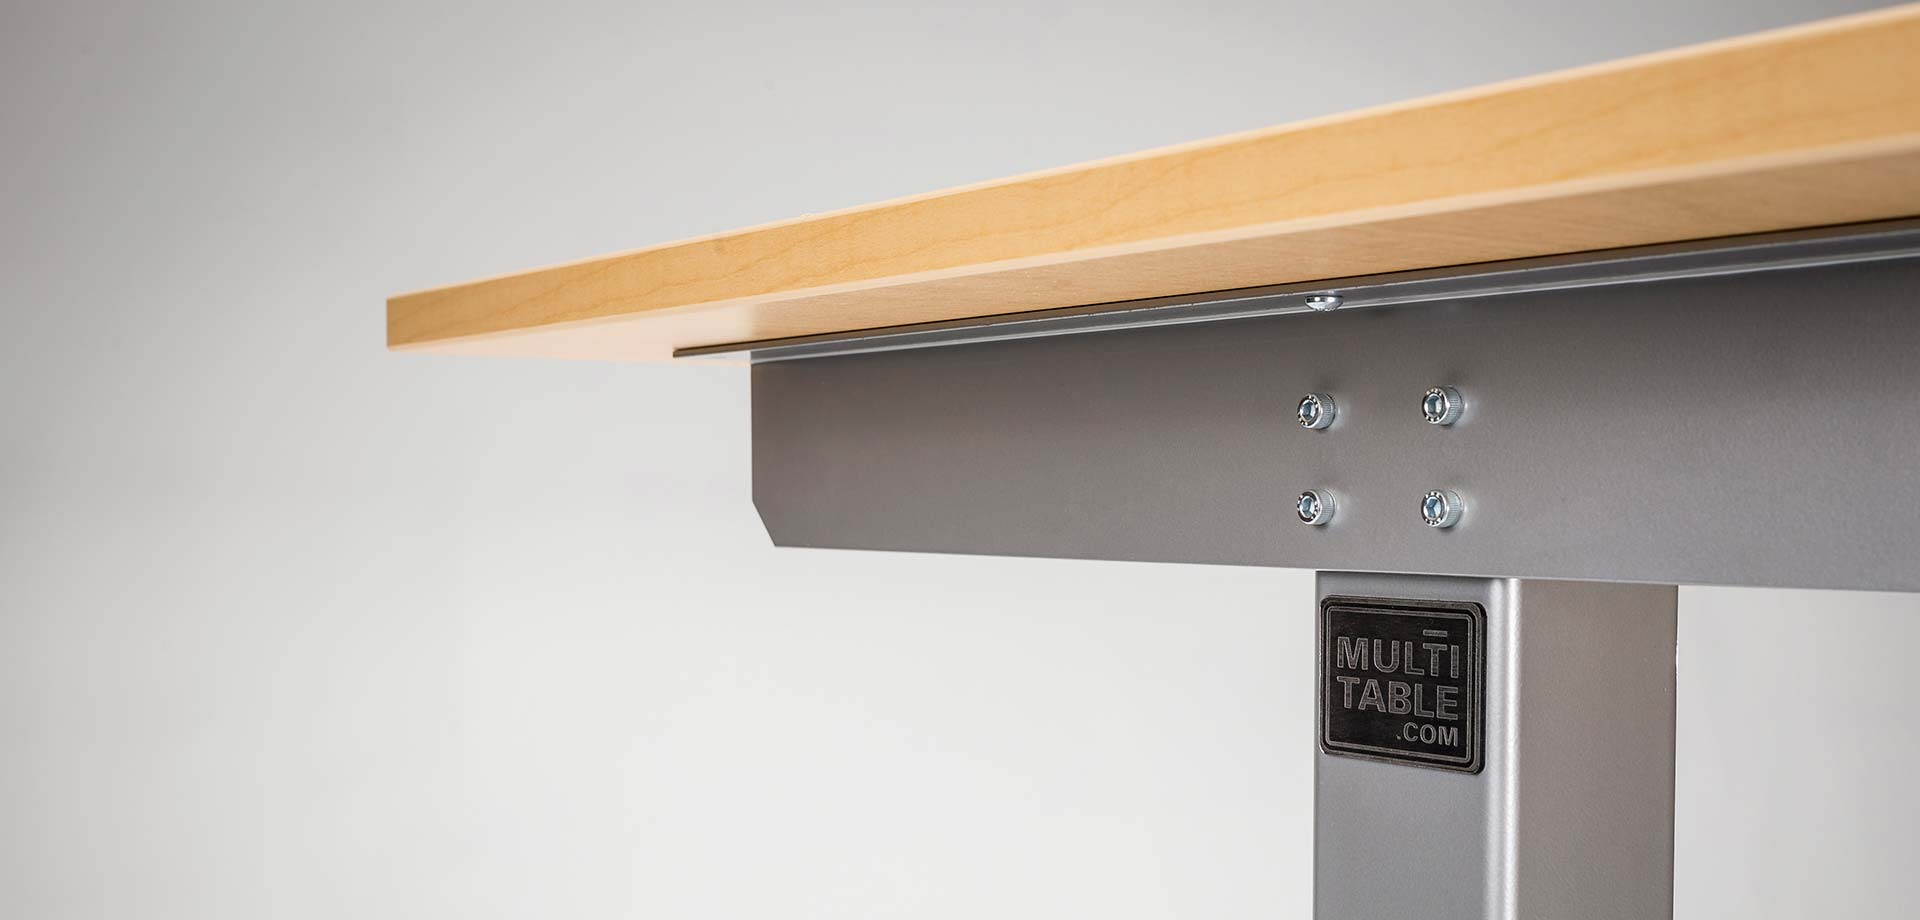 Standing Desk Gallery 43 MultiTable